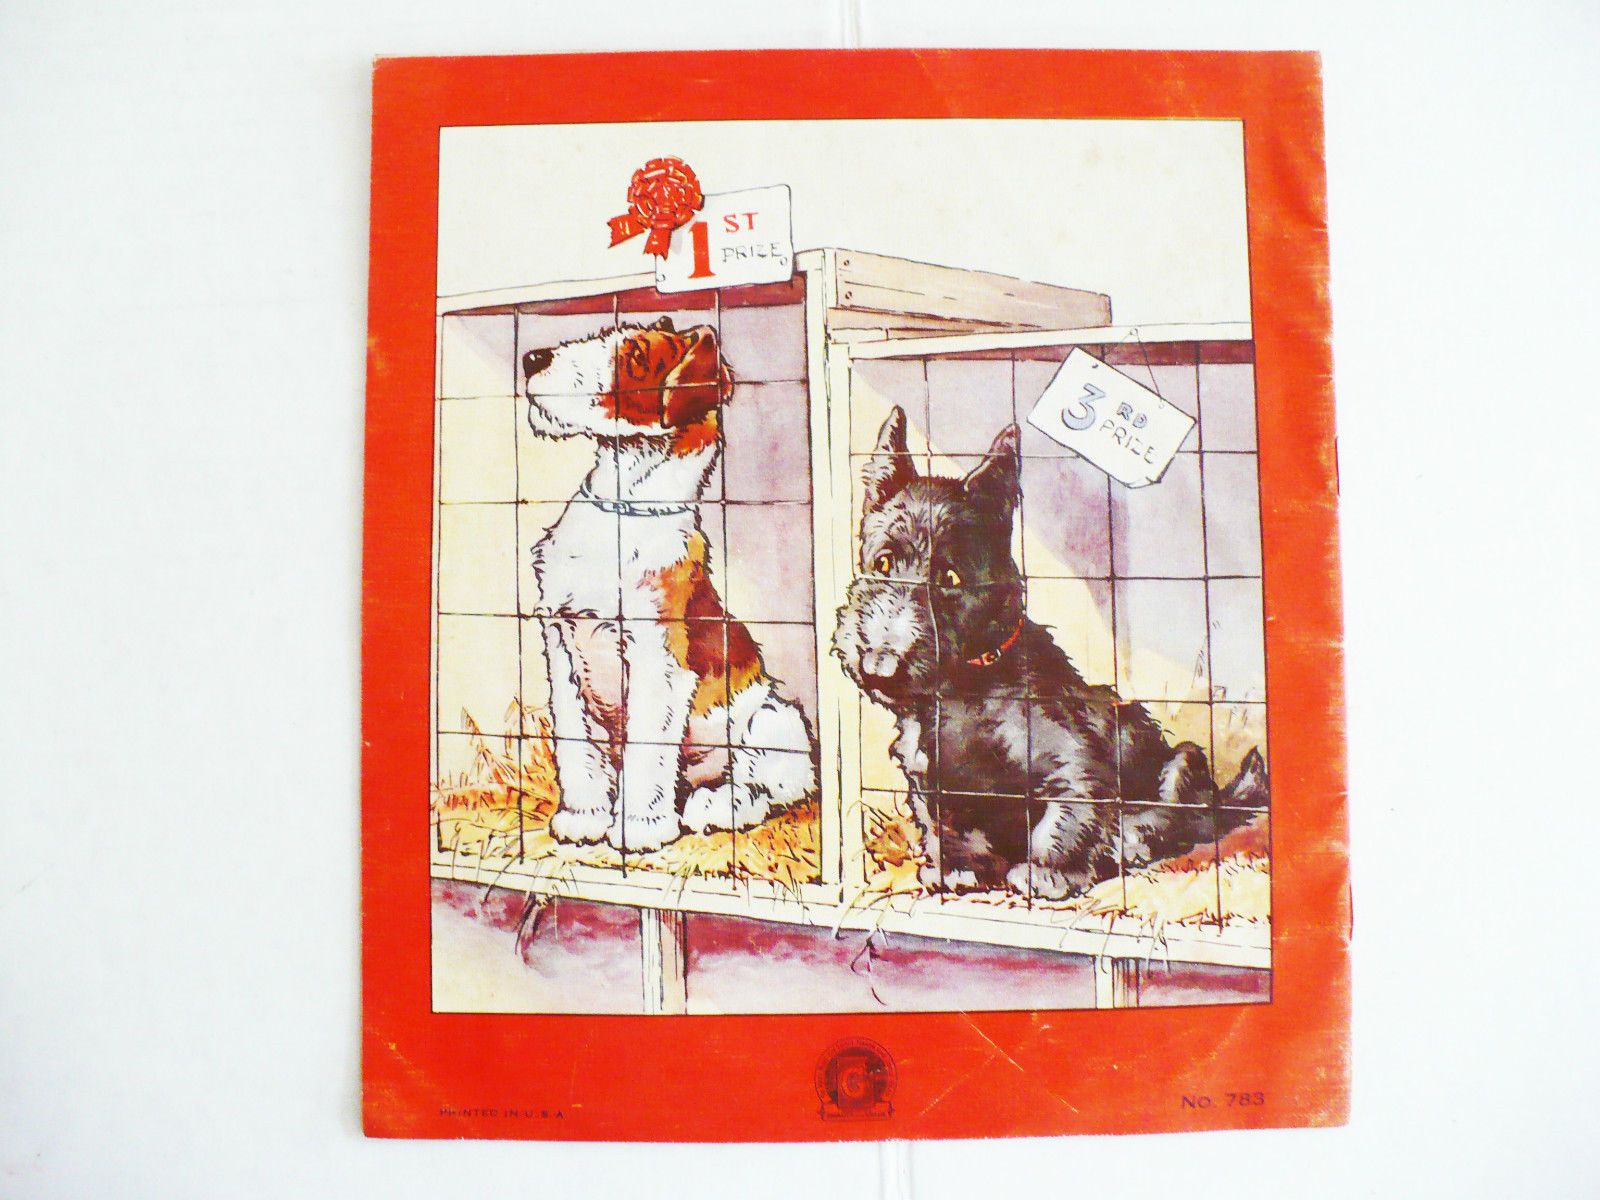 Adorable children's series book titled: Playful Puppies. Sam'l Gabriel & Sons New York. This is series #783. Features black Scotty dog and wire hair or airedale terrier dog.just so cute! Bright original colors.   eBay!